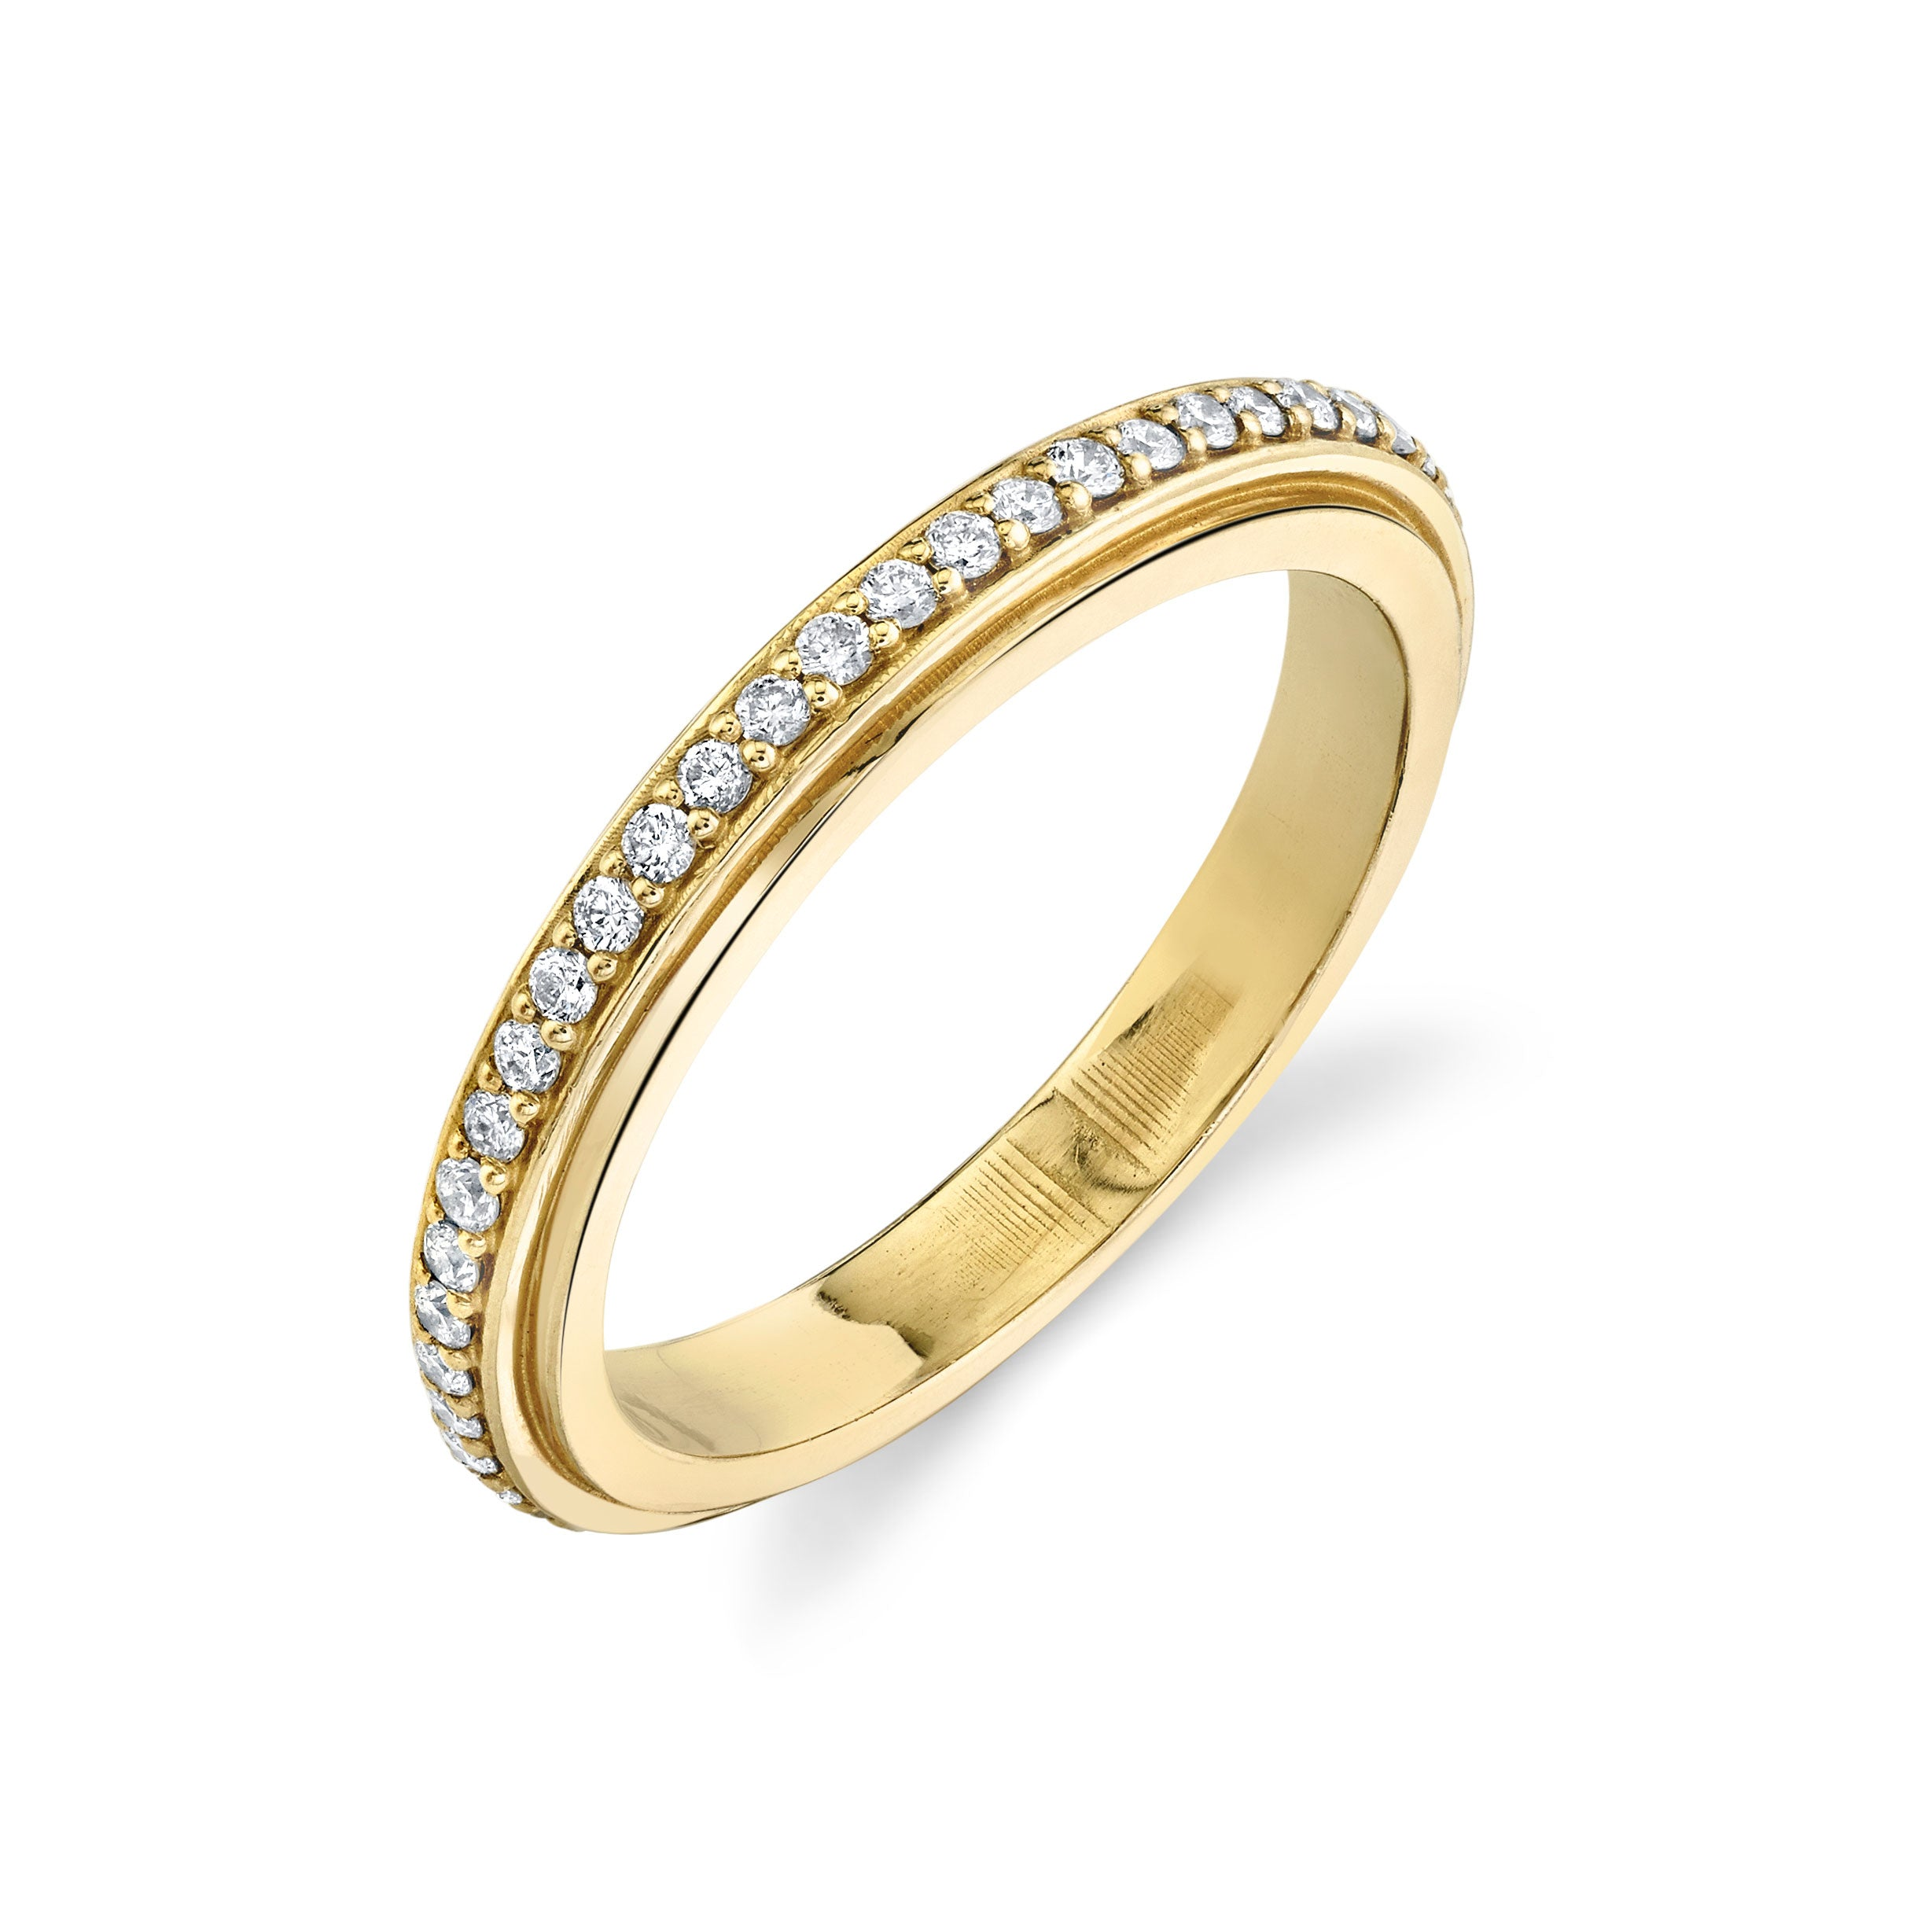 Track Ring with Pavé White Diamonds - Gabriela Artigas